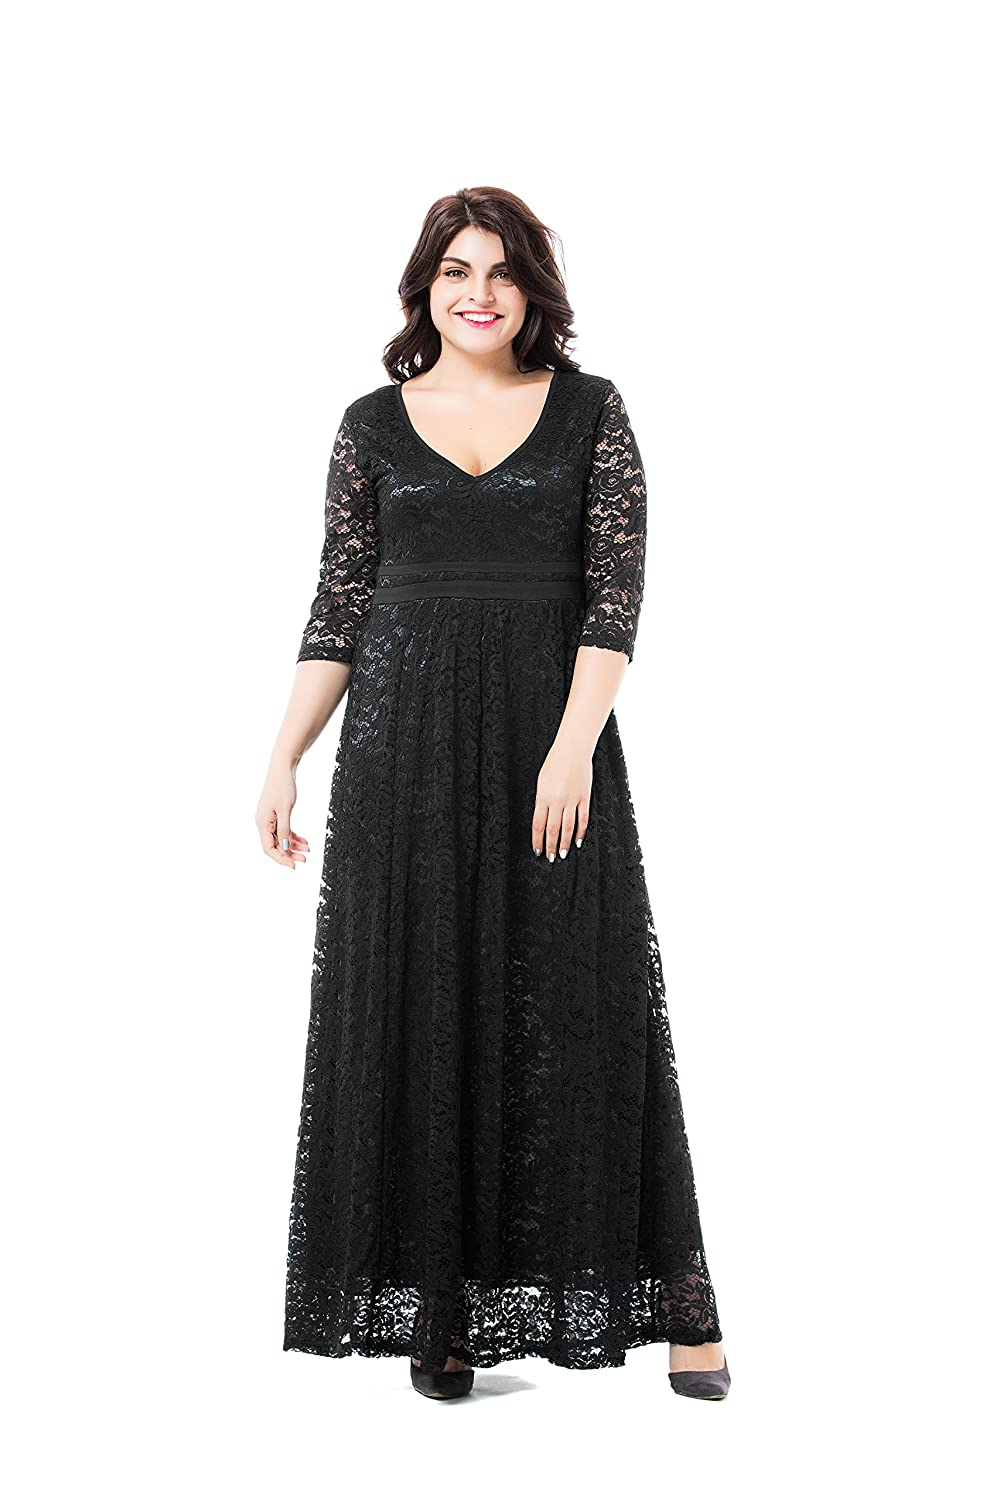 Victorian Plus Size Dresses | Edwardian Clothing, Costumes ESPRLIA Womens Plus Size Double V Neck 3/4 Sleeve Dress High Waist Maxi Wedding Dress $29.99 AT vintagedancer.com